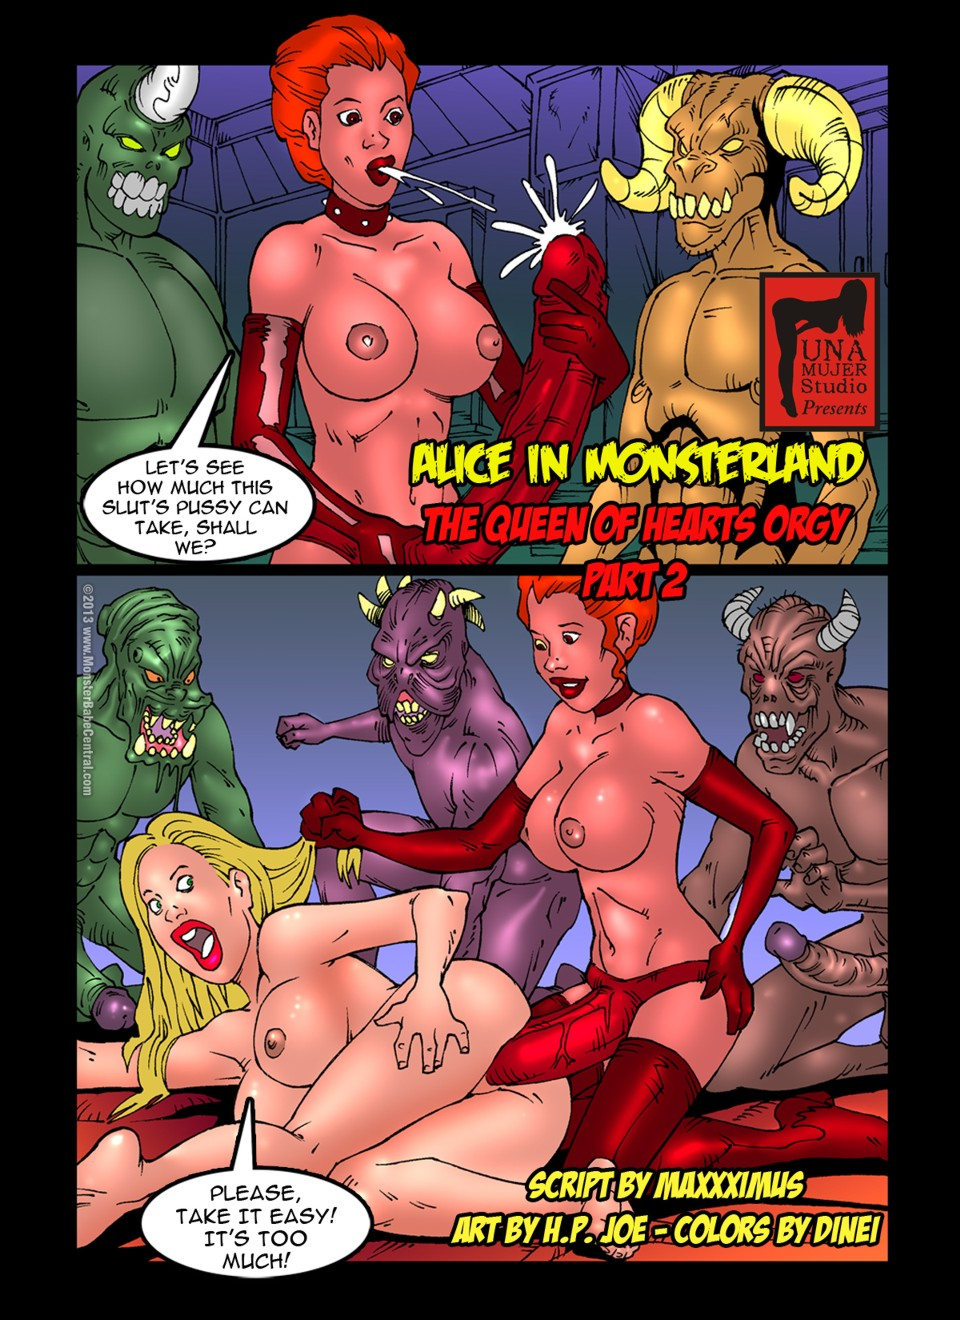 SureFap xxx porno Alice in Wonderland - [MonsterBabeCentral] - Alice in Monsterland 08 - The Queen Of Hearts Orgy Part 2